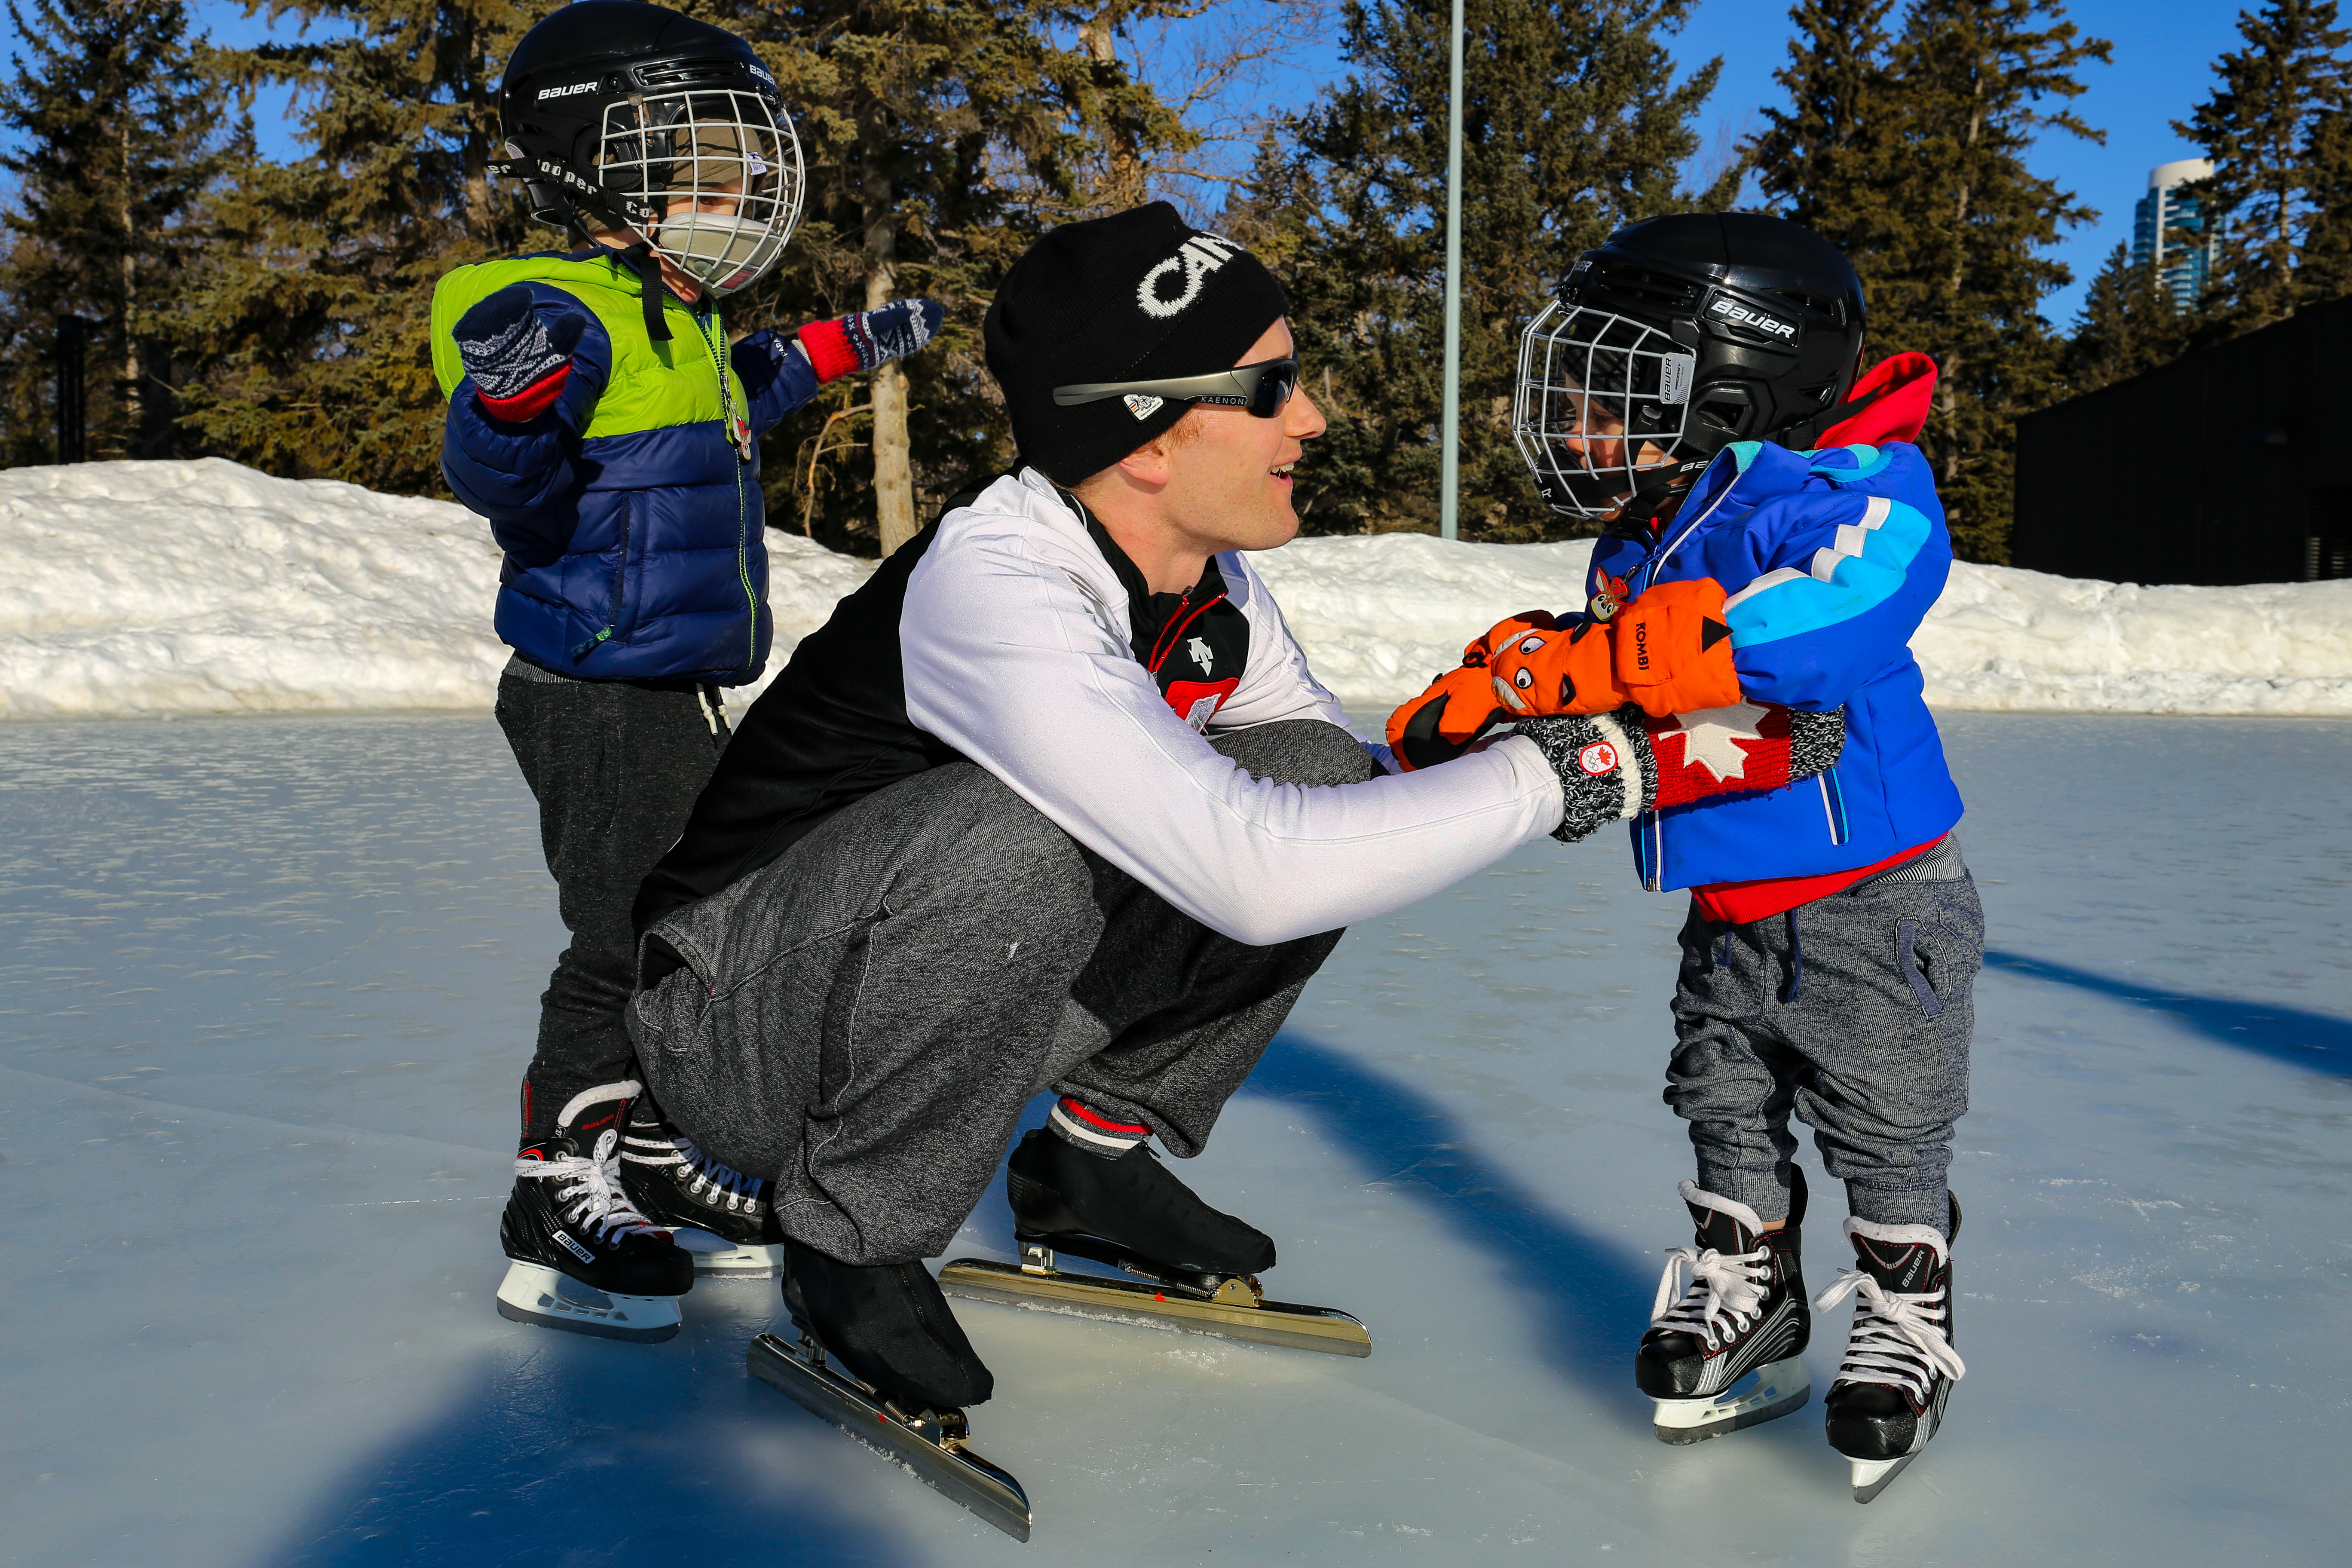 Jamie Gregg shares a moment on Victoria Oval with his sons, Asher and Elias. (Emily Rendell-Watson/CBC)